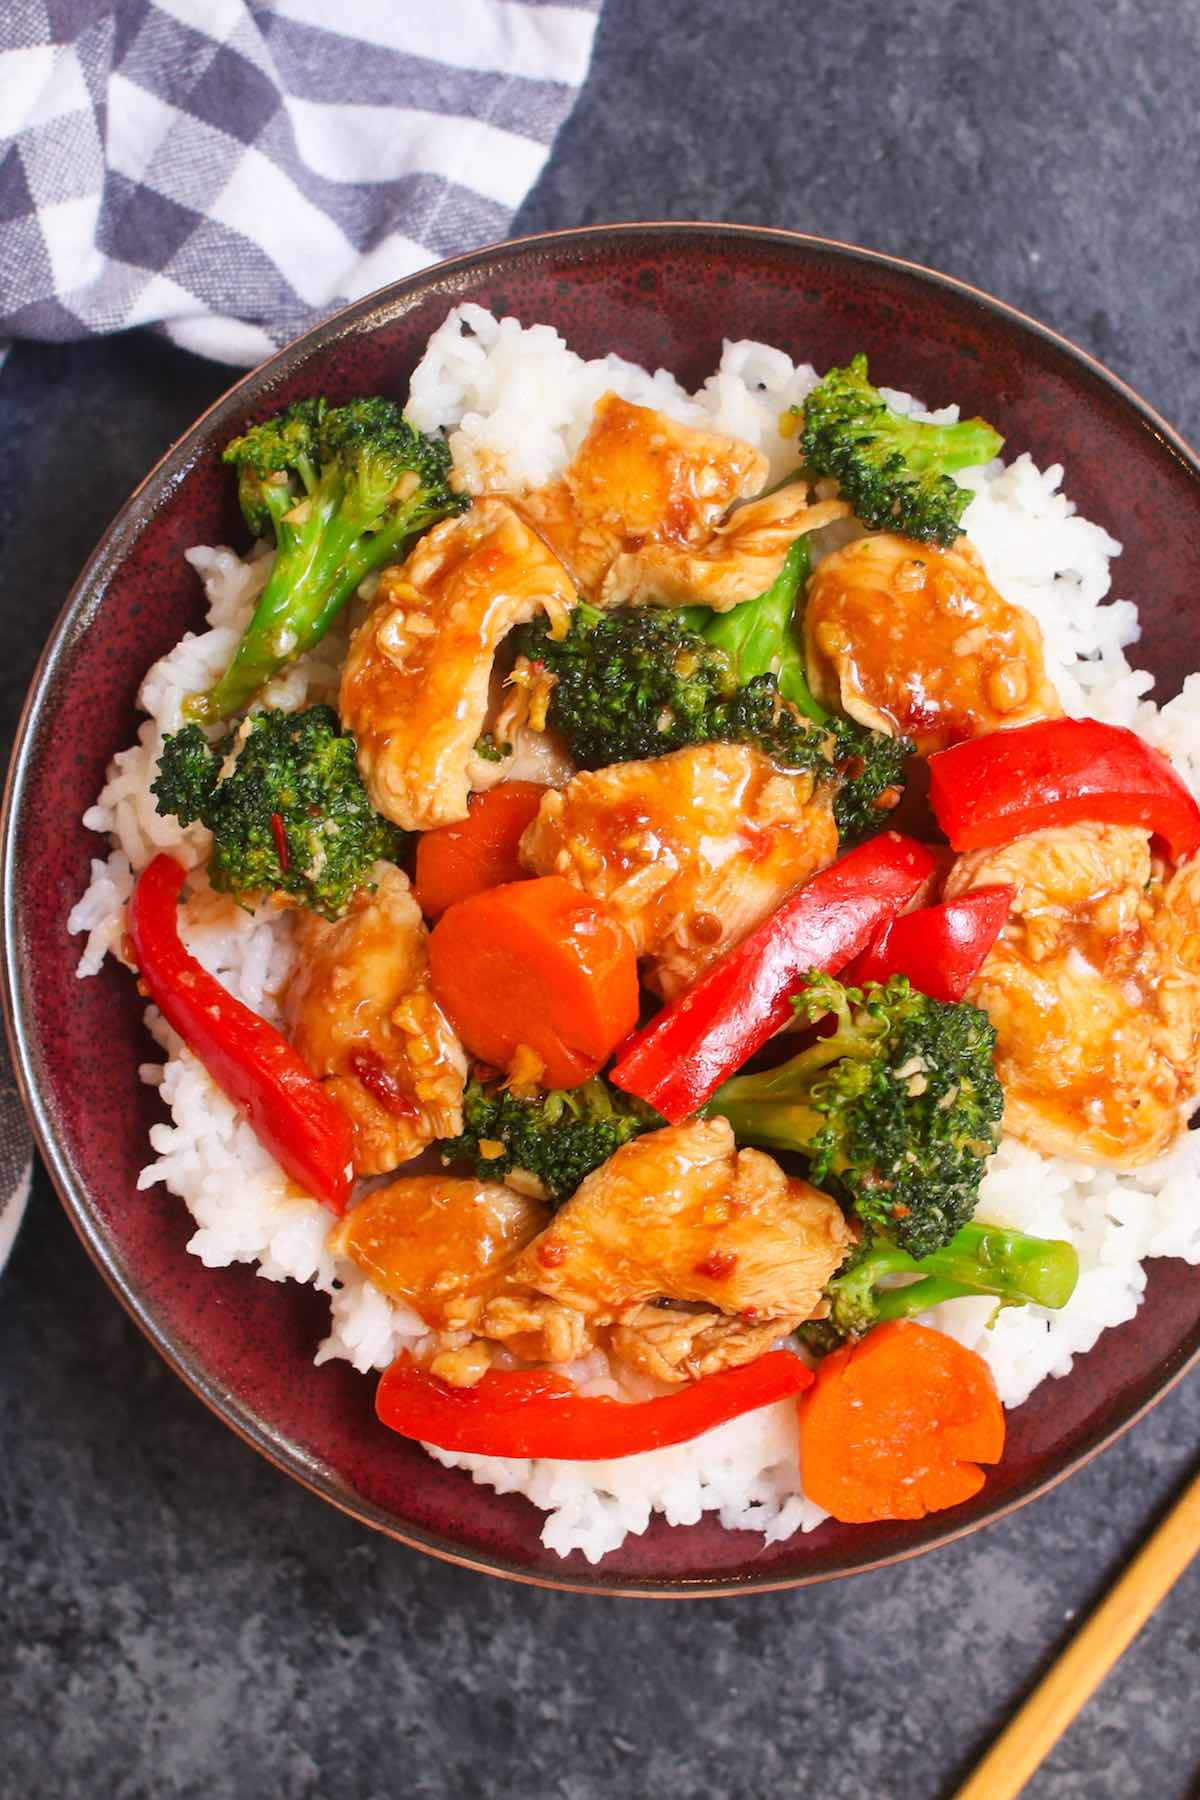 Hunan Chicken is a spicy stir-fry dish with sliced chicken breast and mixed vegetables in a delicious Hunan sauce. The spicy chili bean paste lends a wonderful salty and spicy flavor to this quick and easy recipe that rivals authentic Chinese takeout.